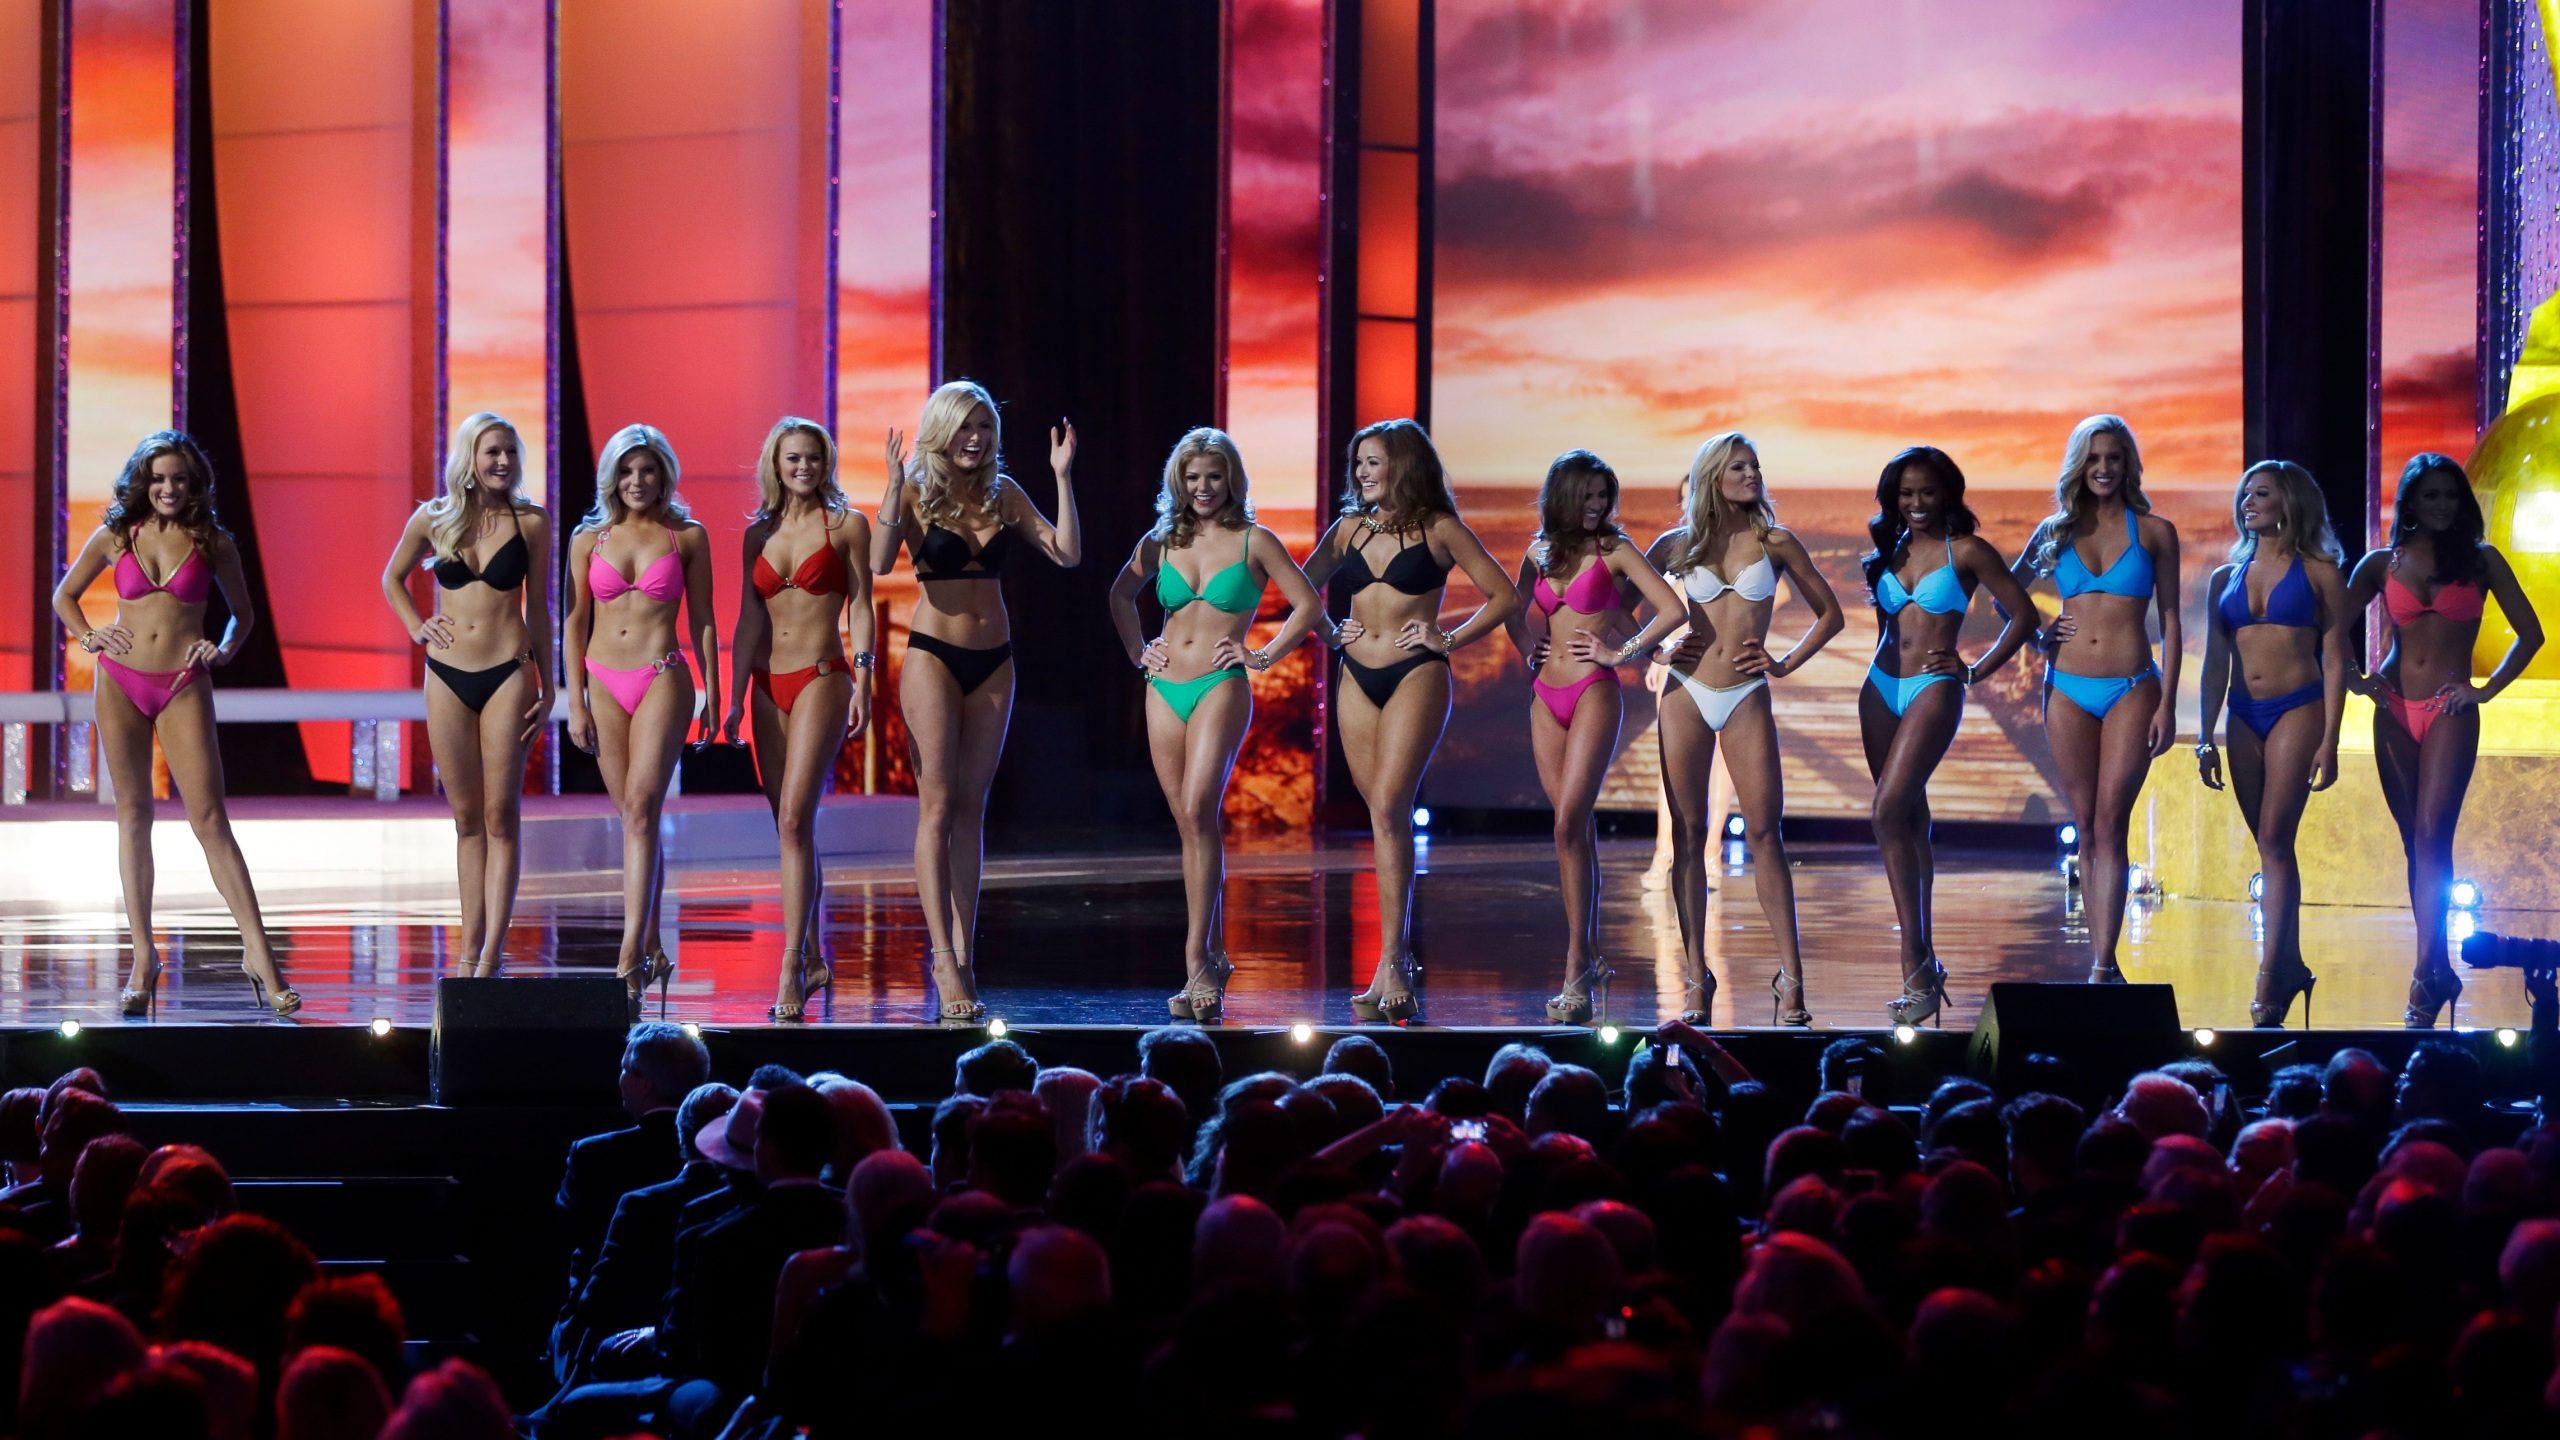 Miss_America_Changes_80165-159532.jpg84288324